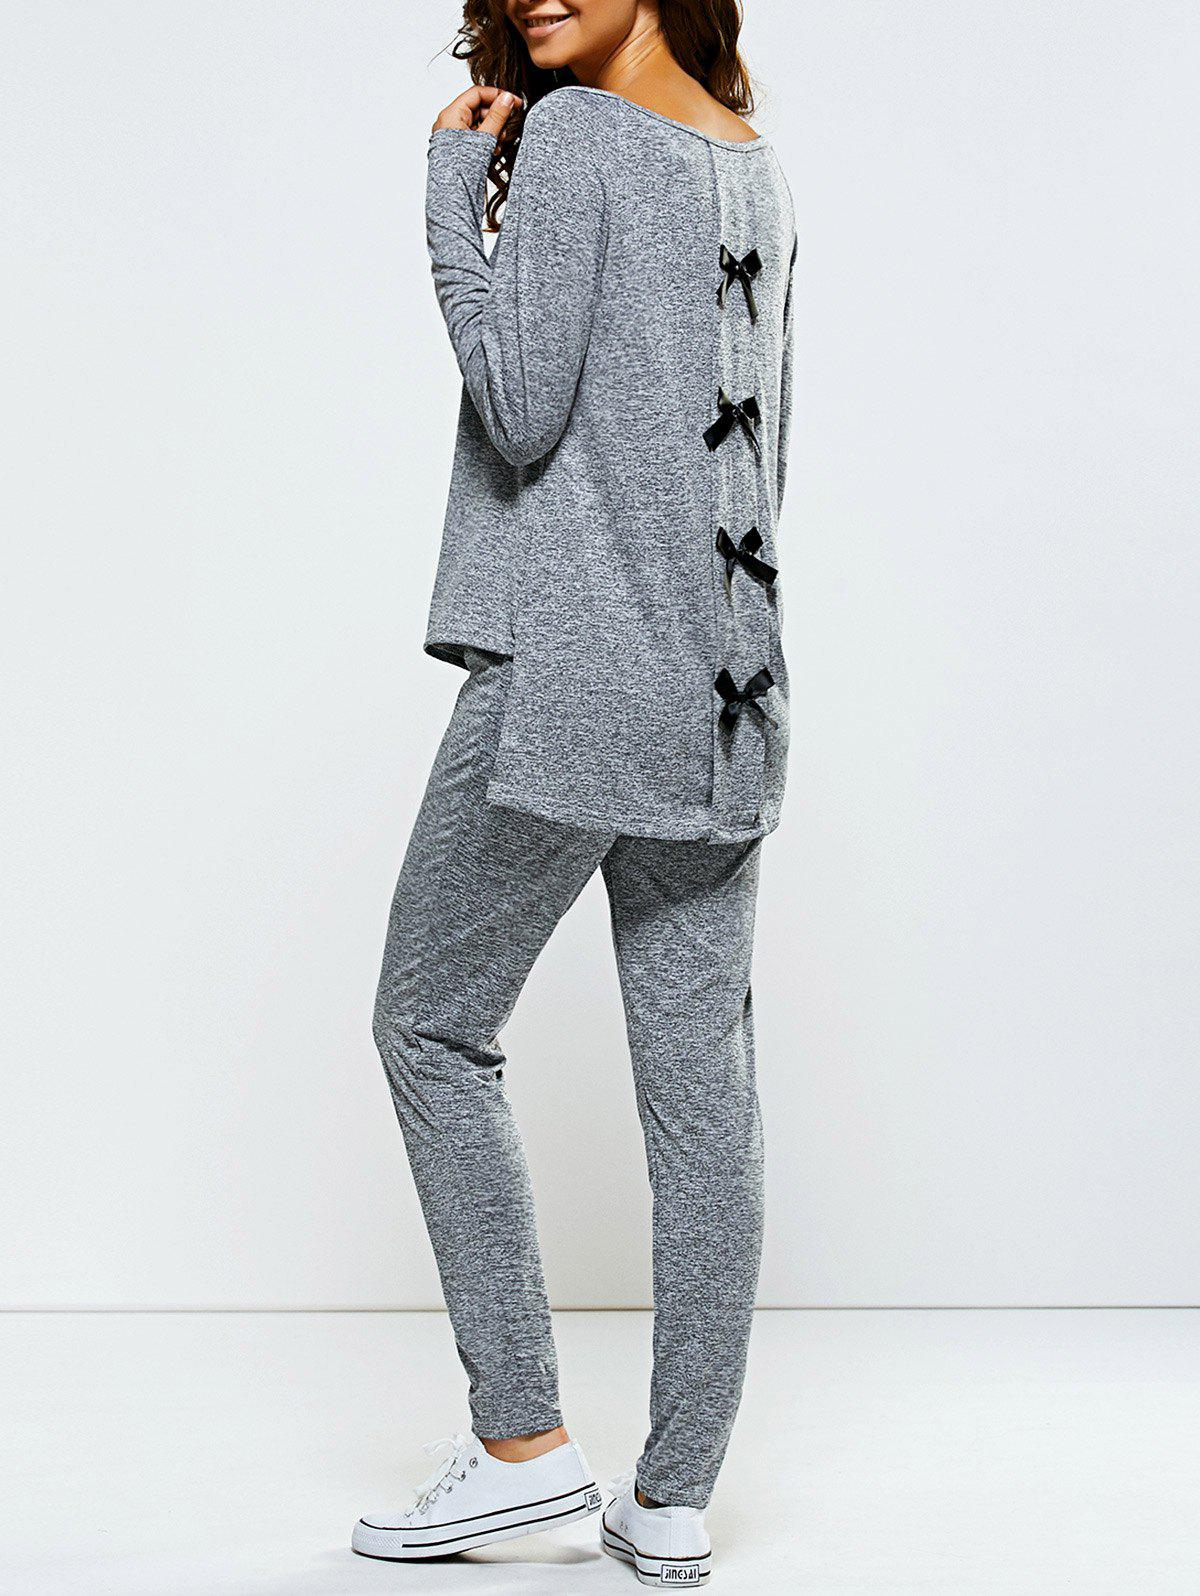 Bowknot Embellished Asymmetrical Sports SuitWomen<br><br><br>Size: S<br>Color: GRAY